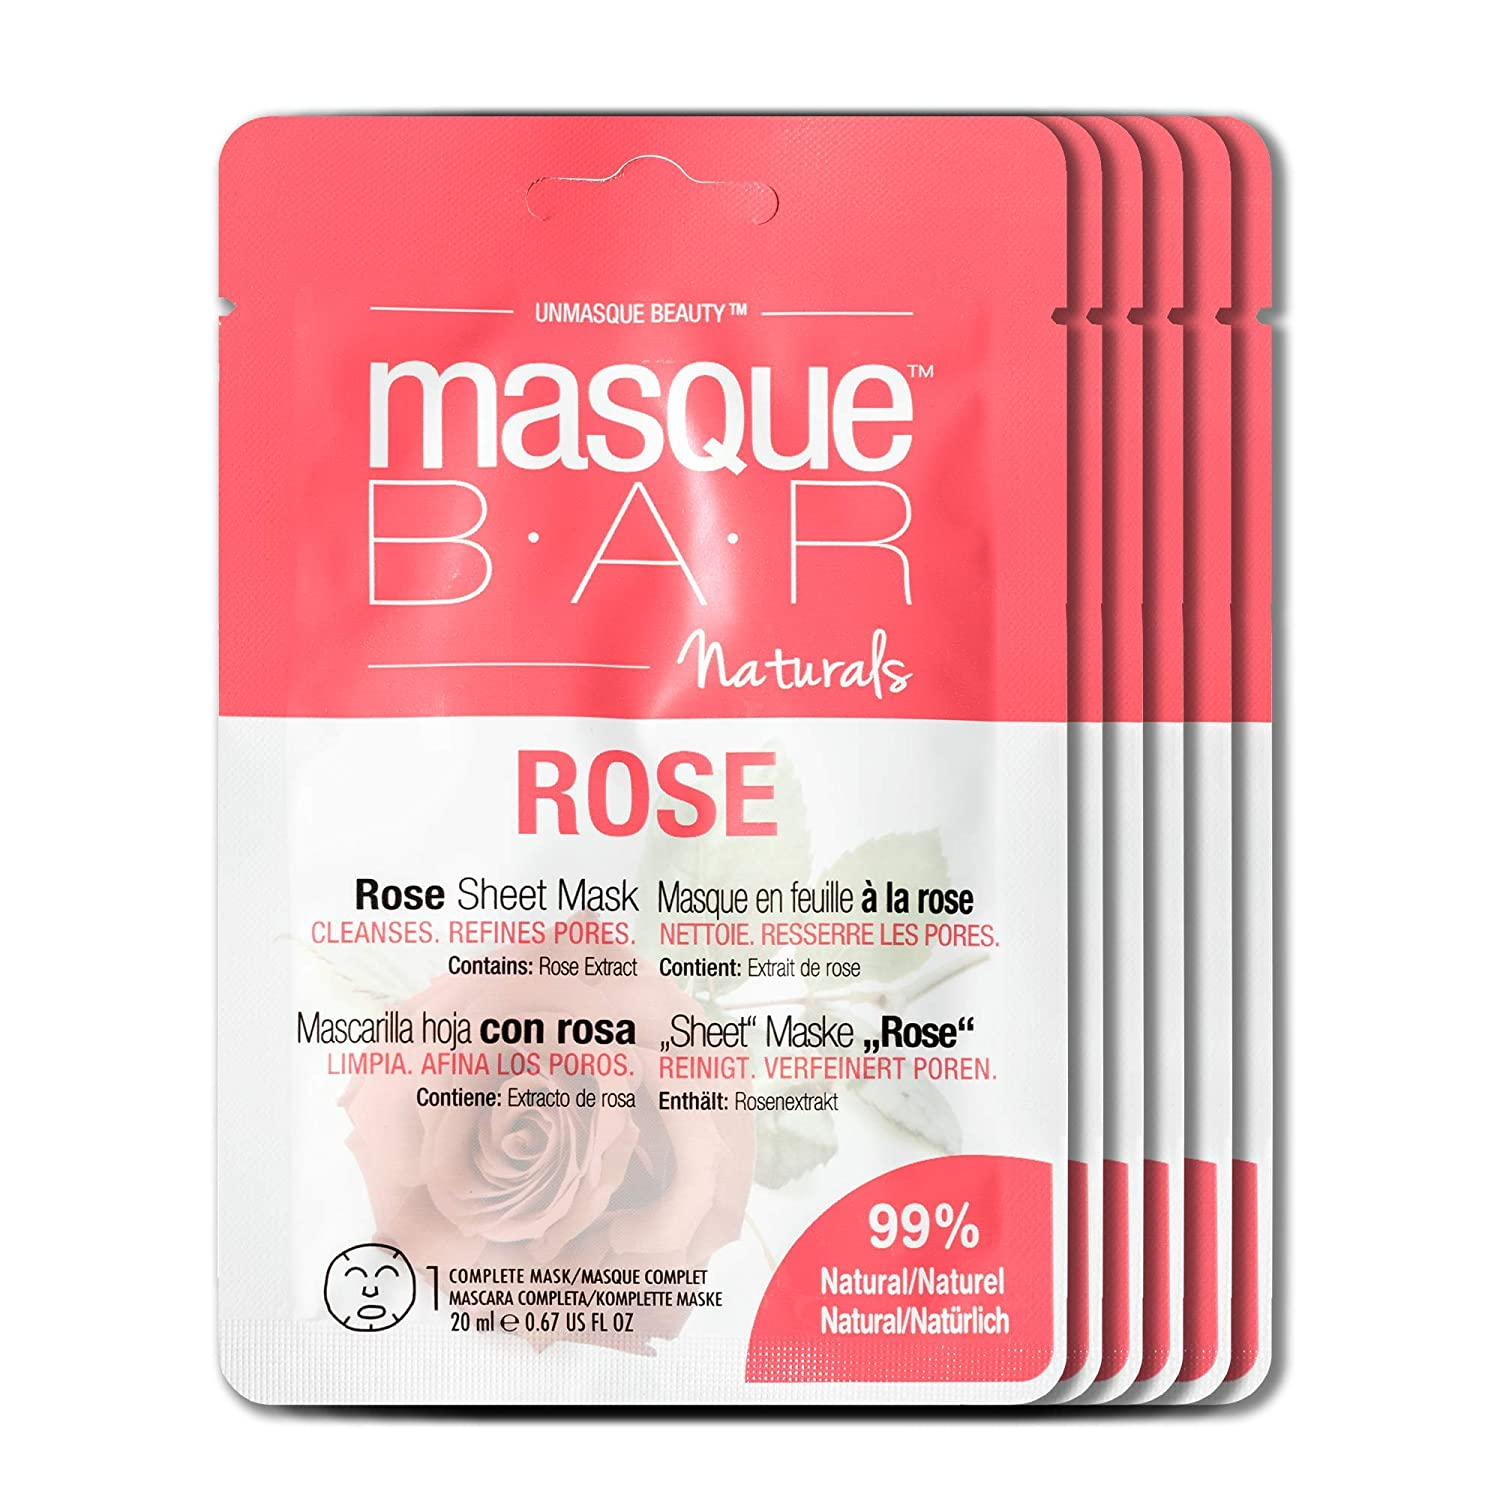 masque BAR Naturals Rose Sheet Face Mask, Korean Skin Care Facial Mask, Pore Minimzer FaceMask(6 Pack)